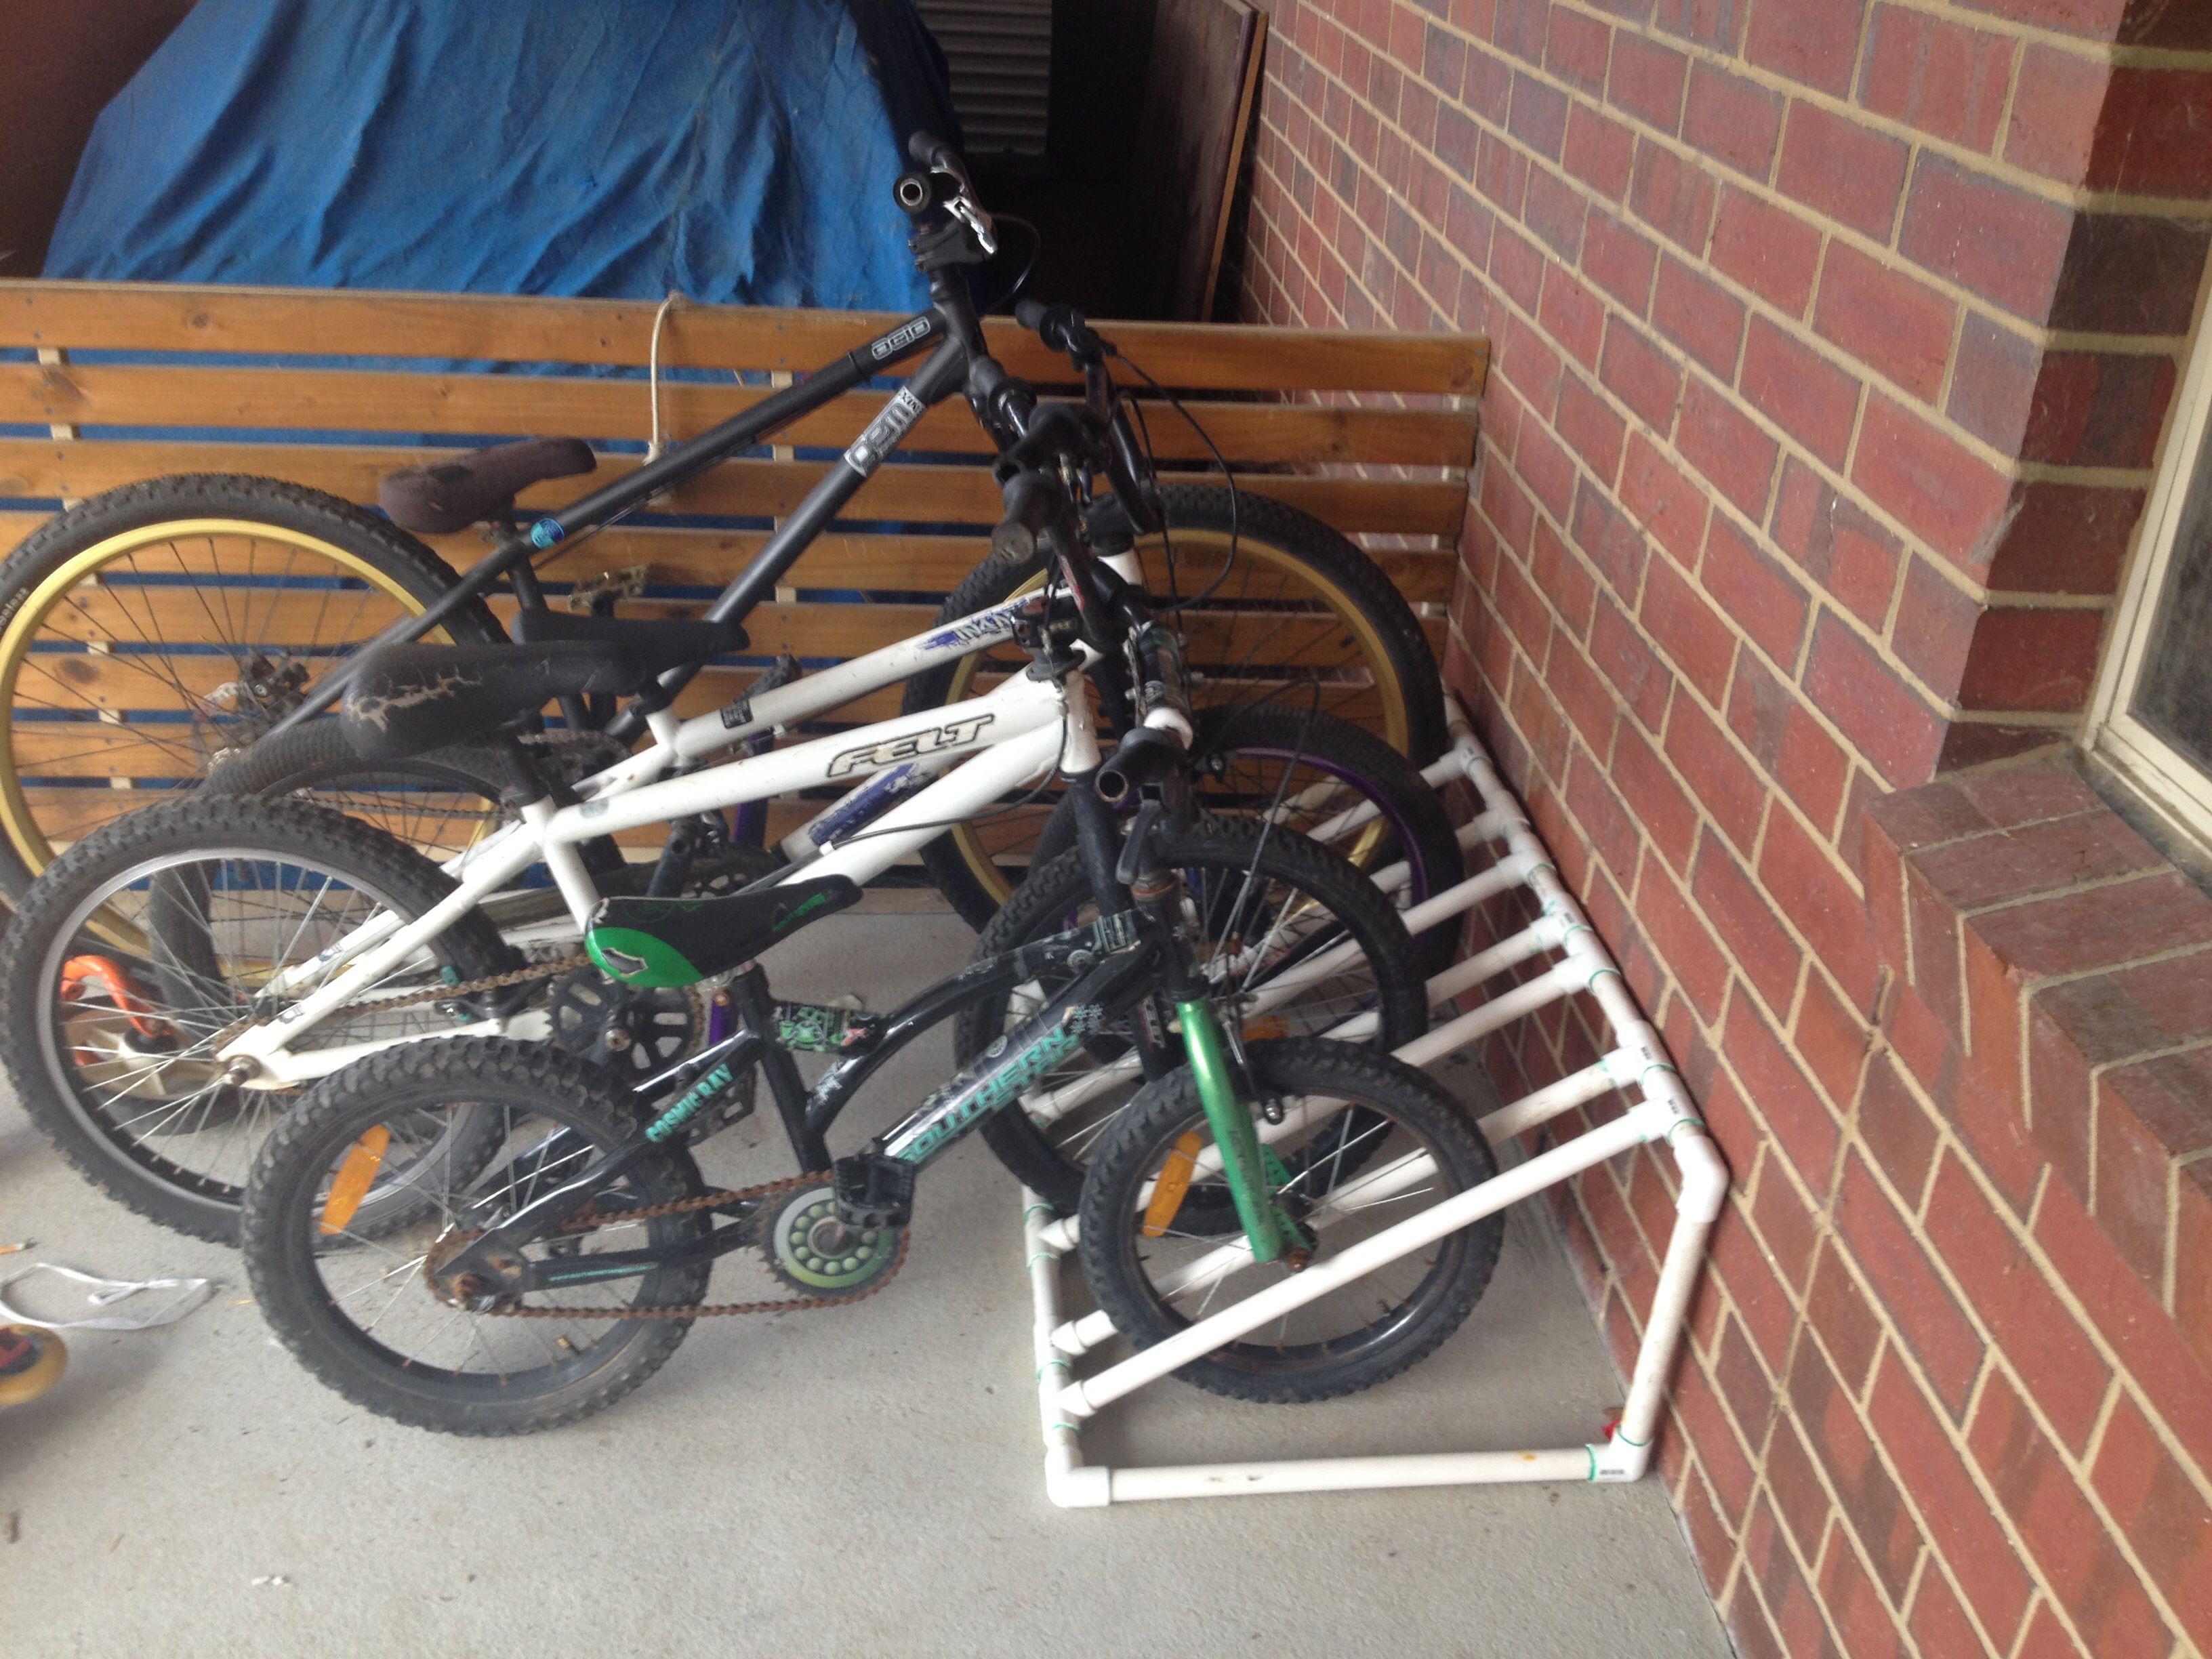 full rack to ideas of bike storage pvc garage hang archived hanger racks mounted holder size bicycle how wall on for